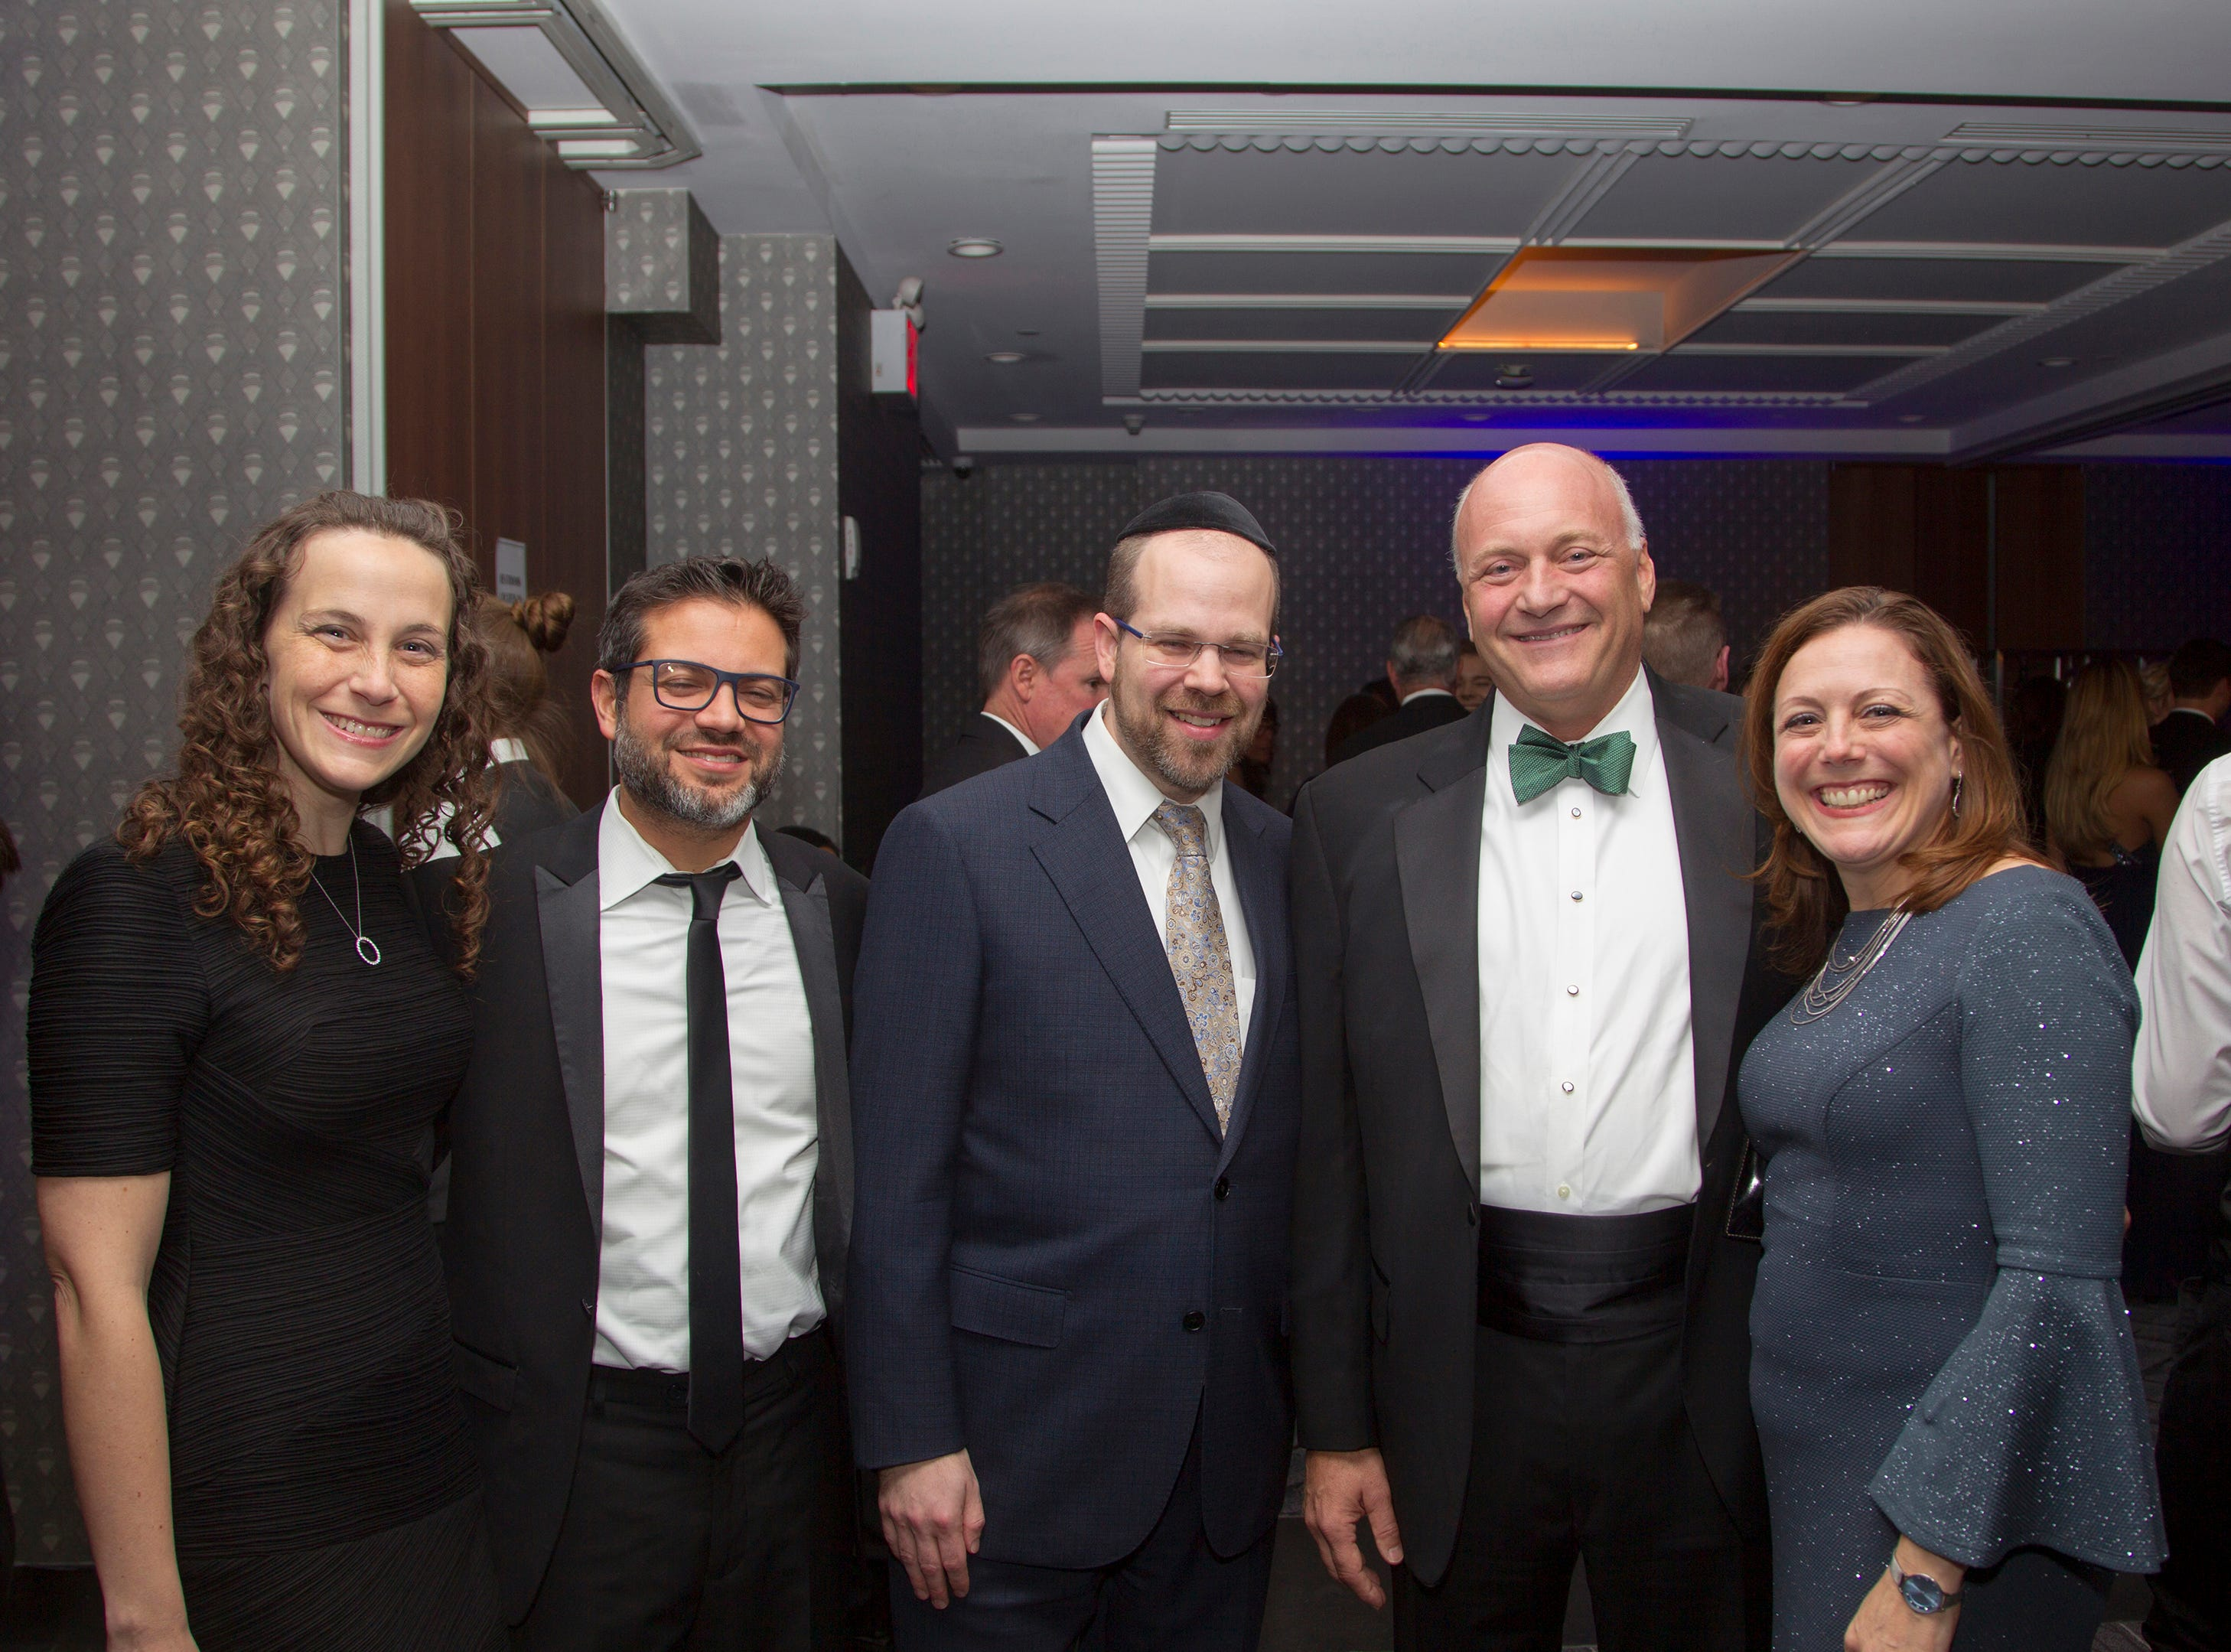 Arielle and Yoni Saposh, Yisrael Rothwachs, Michael Maron, Abigail Hepner Gross. Holy Name Medical Center held its 2018 Founders Ball in NYC at Ziegfeld Ballroom. 11/17/2018